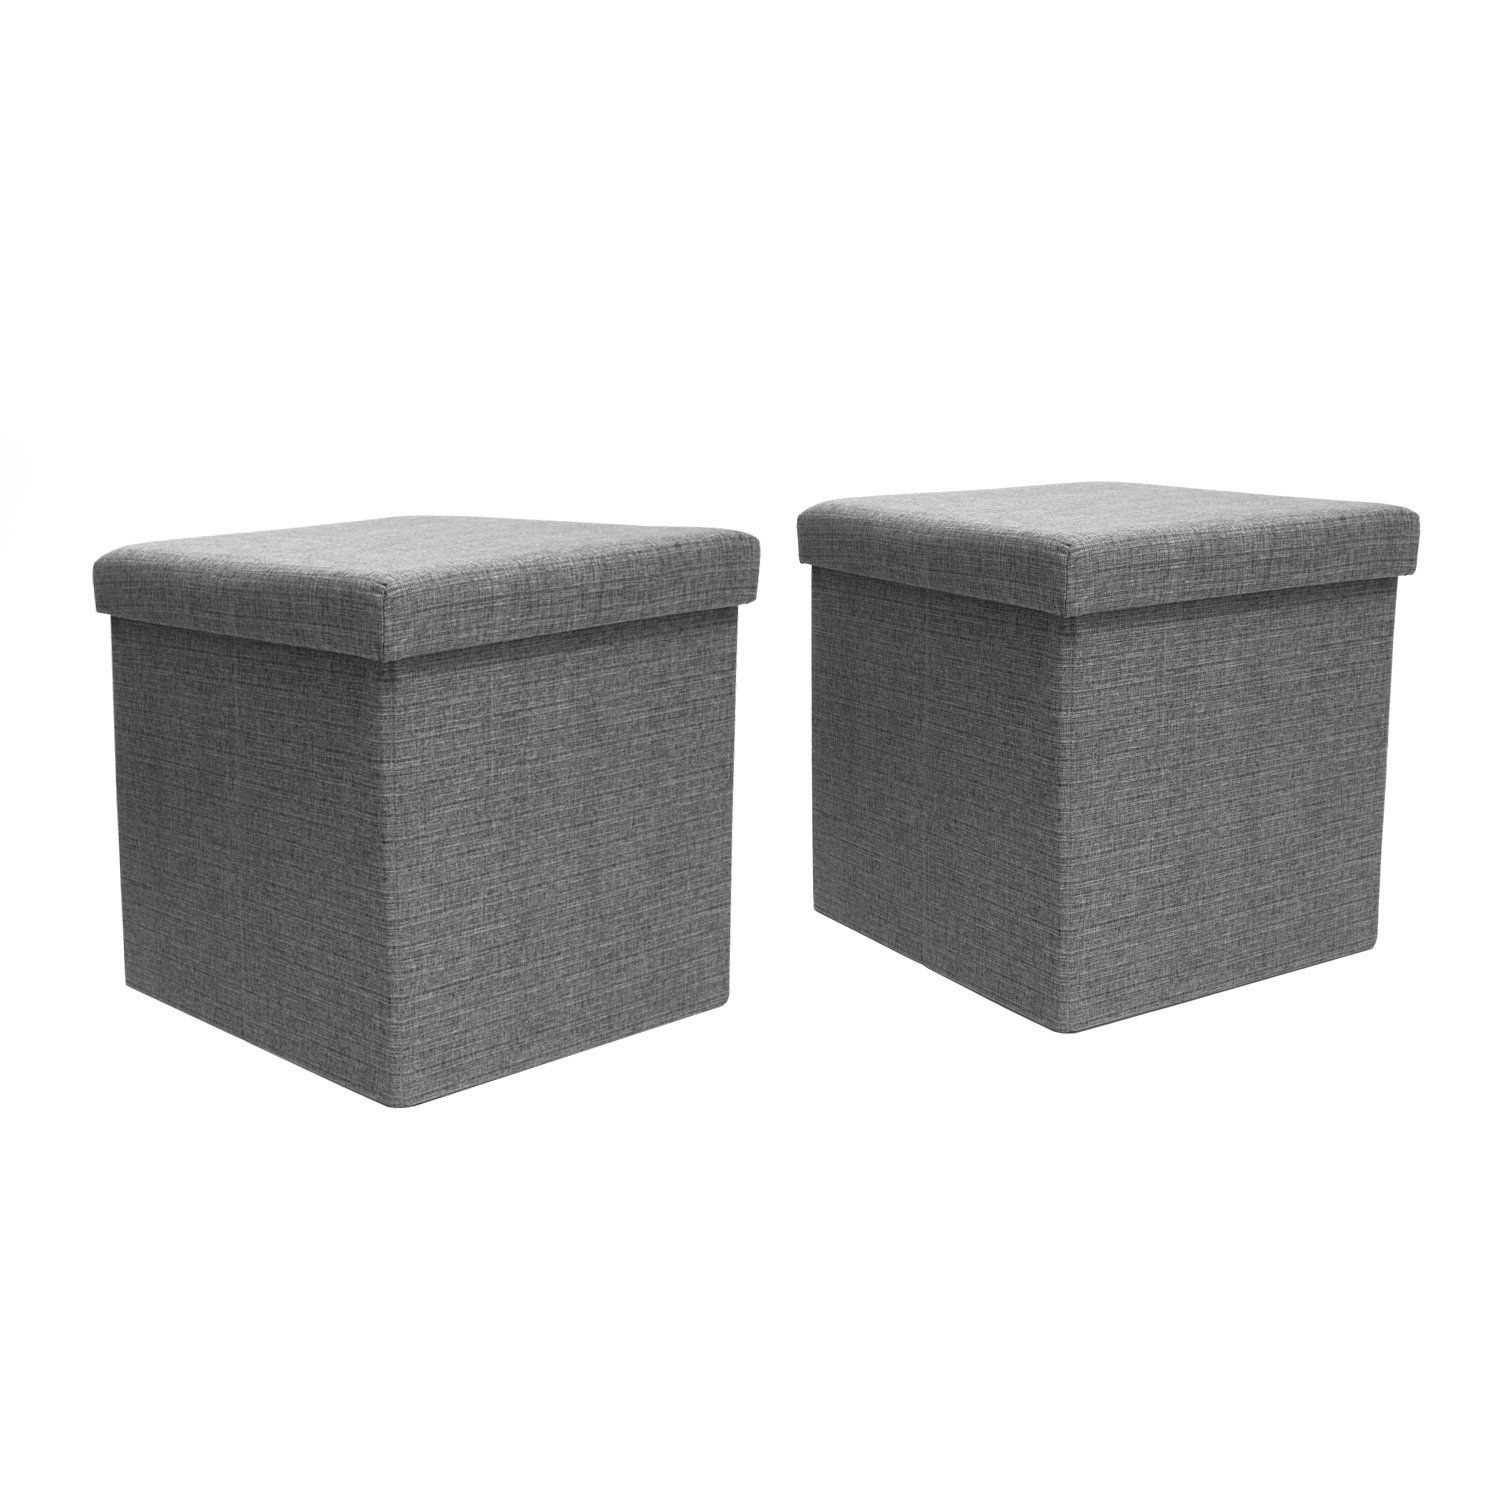 Prime Amazon Com 51 31 Fhe Group Folding Storage Ottomans With Gamerscity Chair Design For Home Gamerscityorg